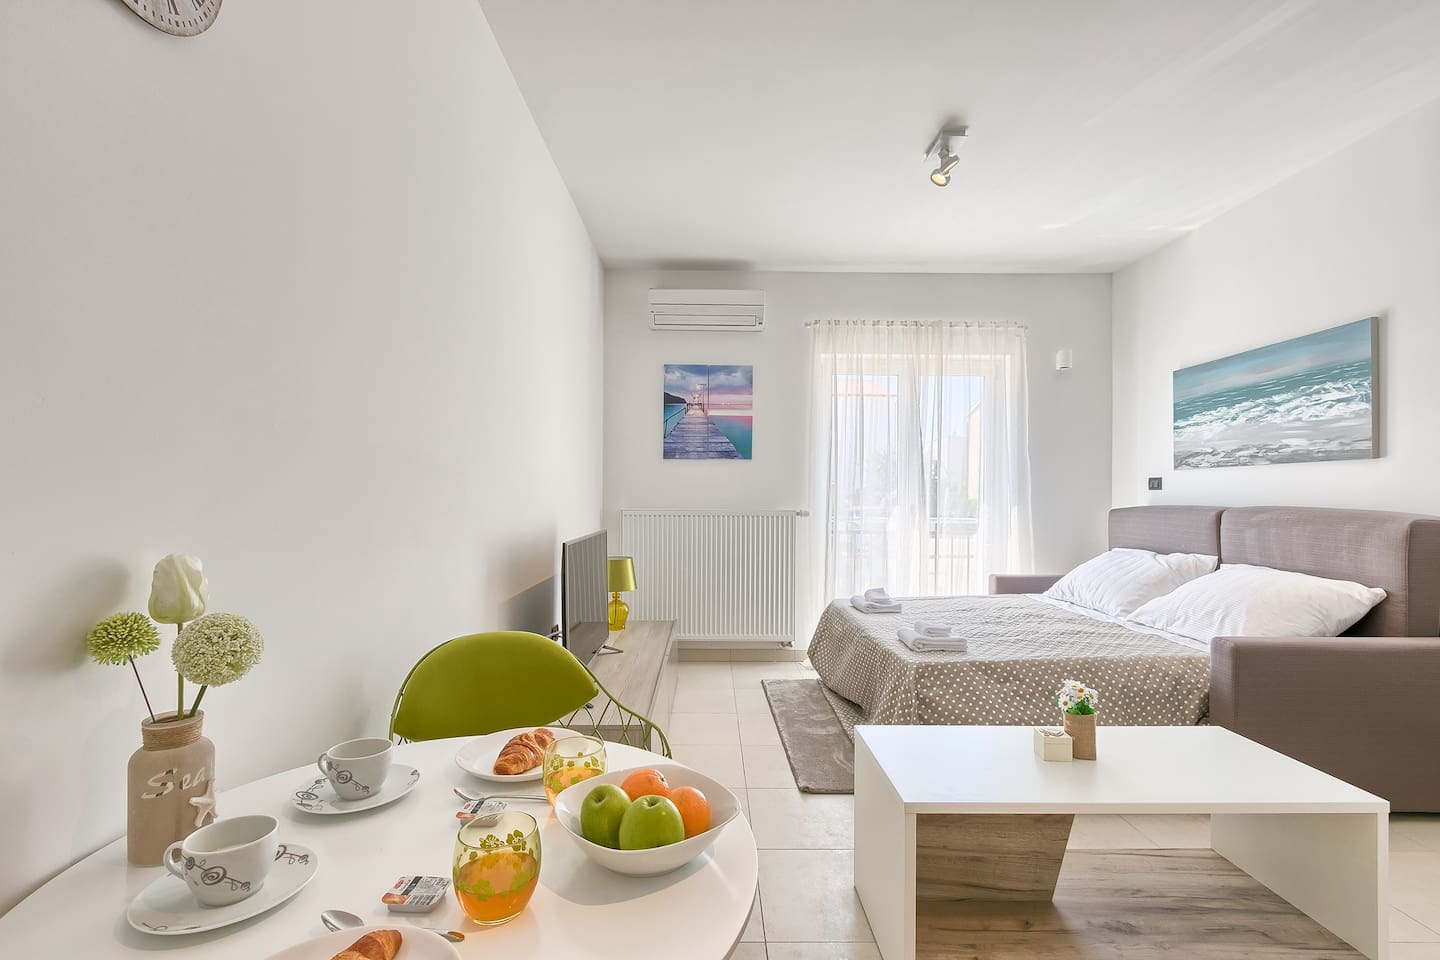 Open space studio apartment with dining table,small table for coffe, queen size bed.